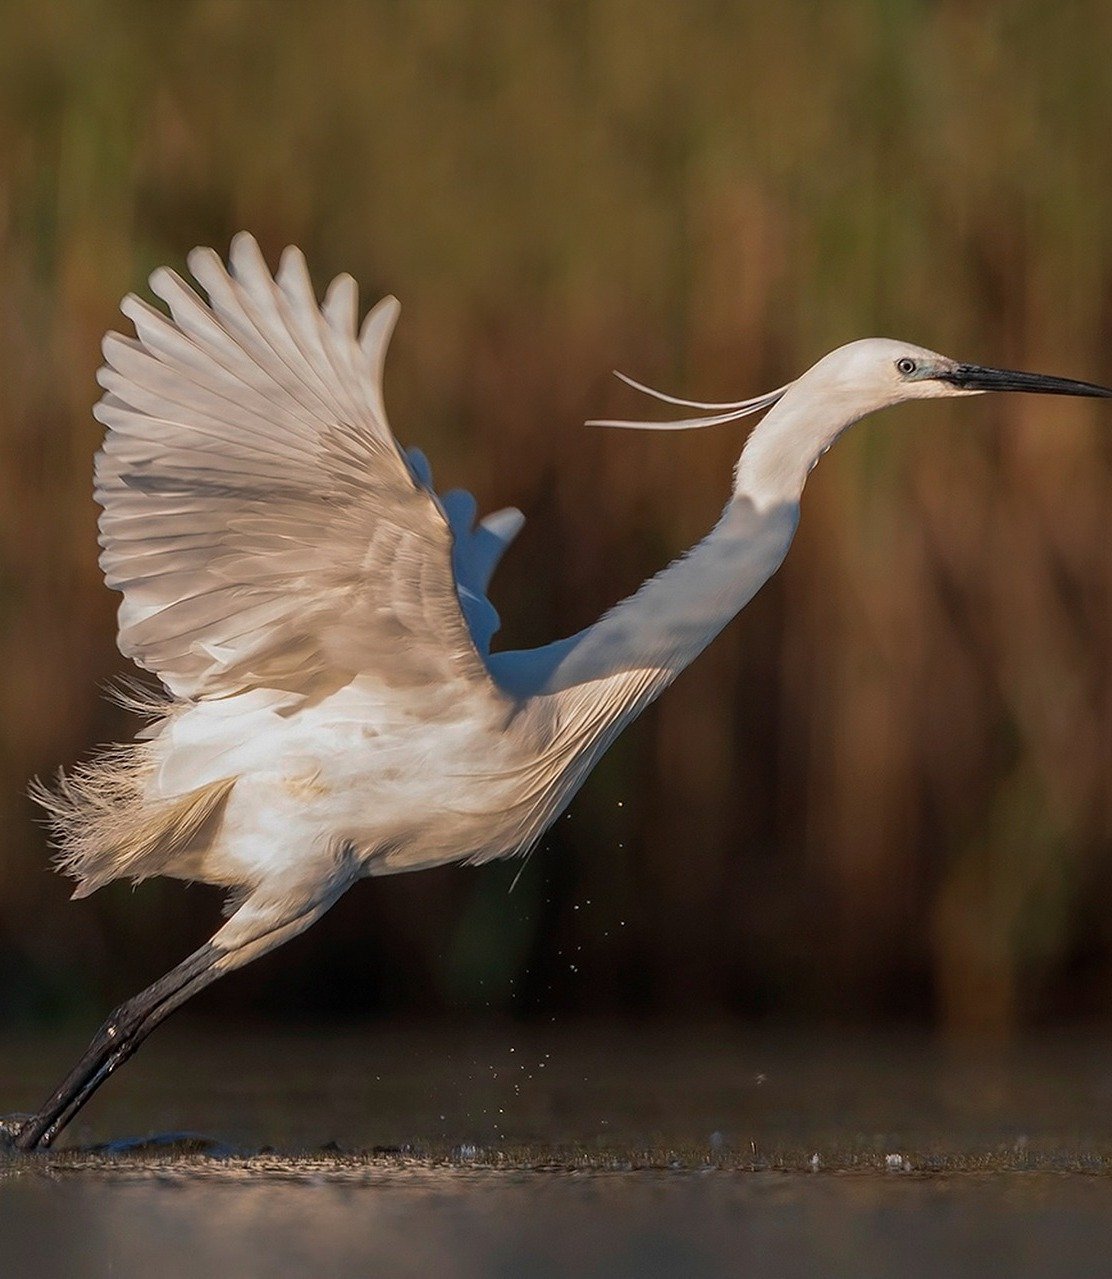 White egret lift off.